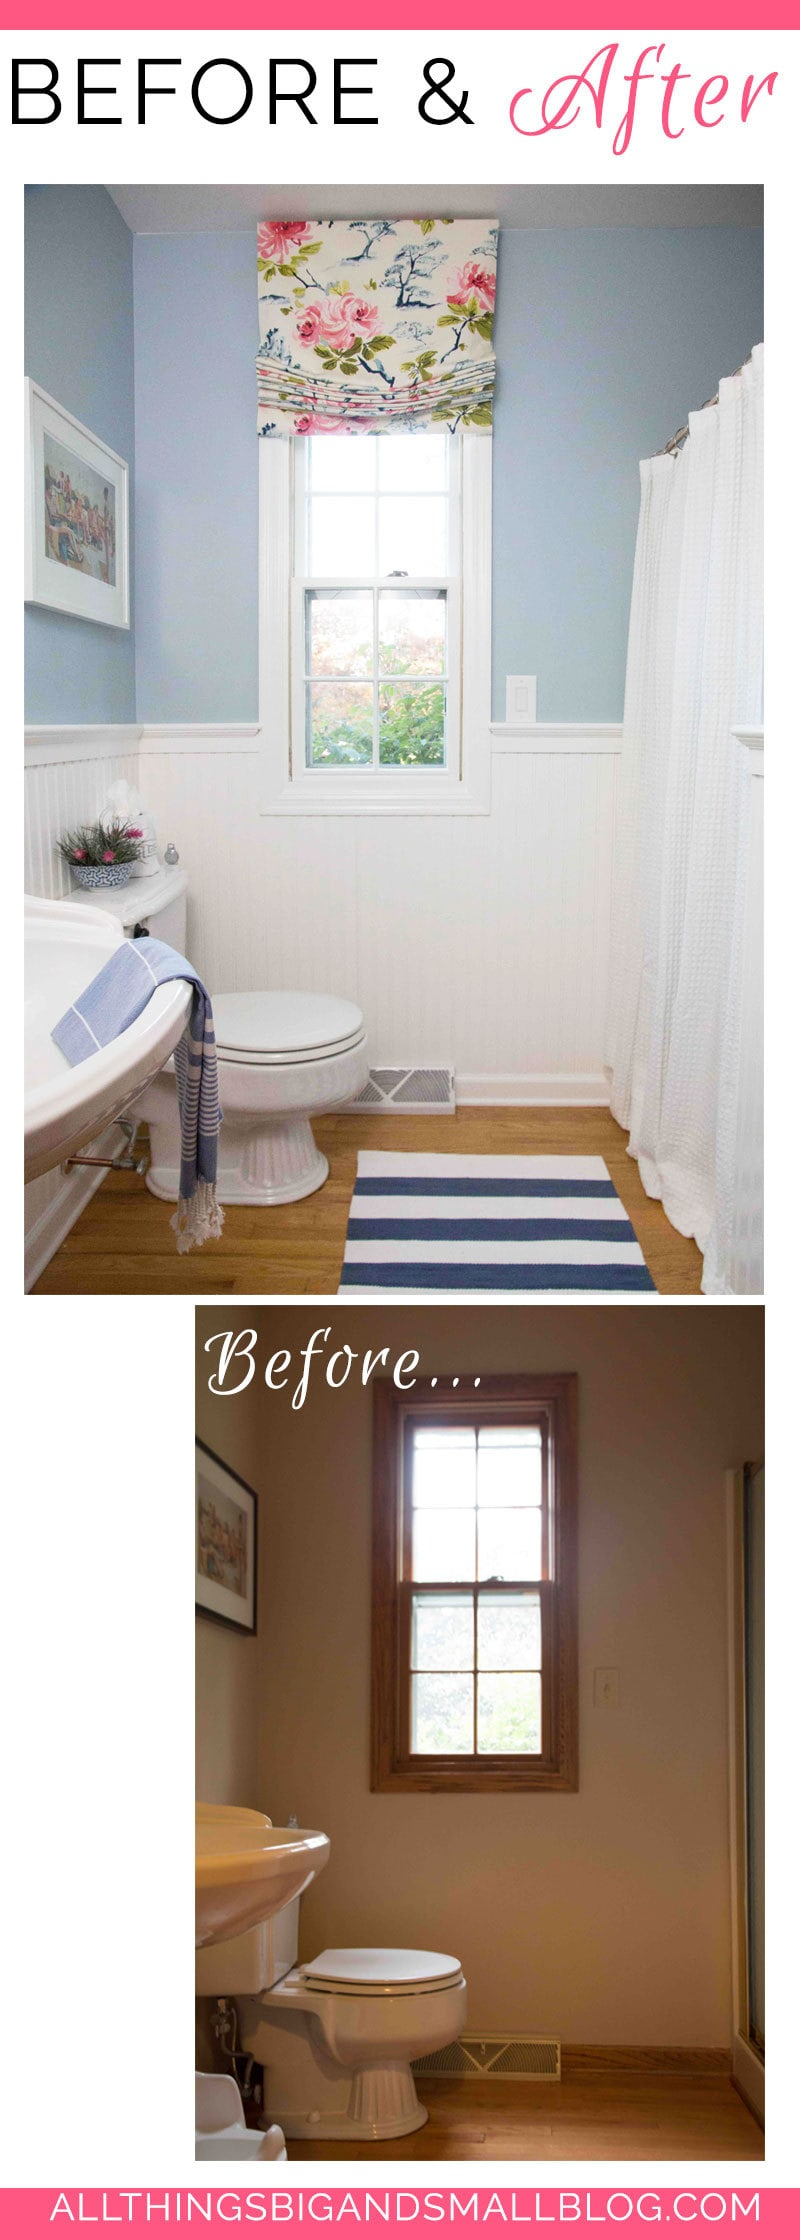 Before And After Budget Friendly Bathroom Orc Week 6